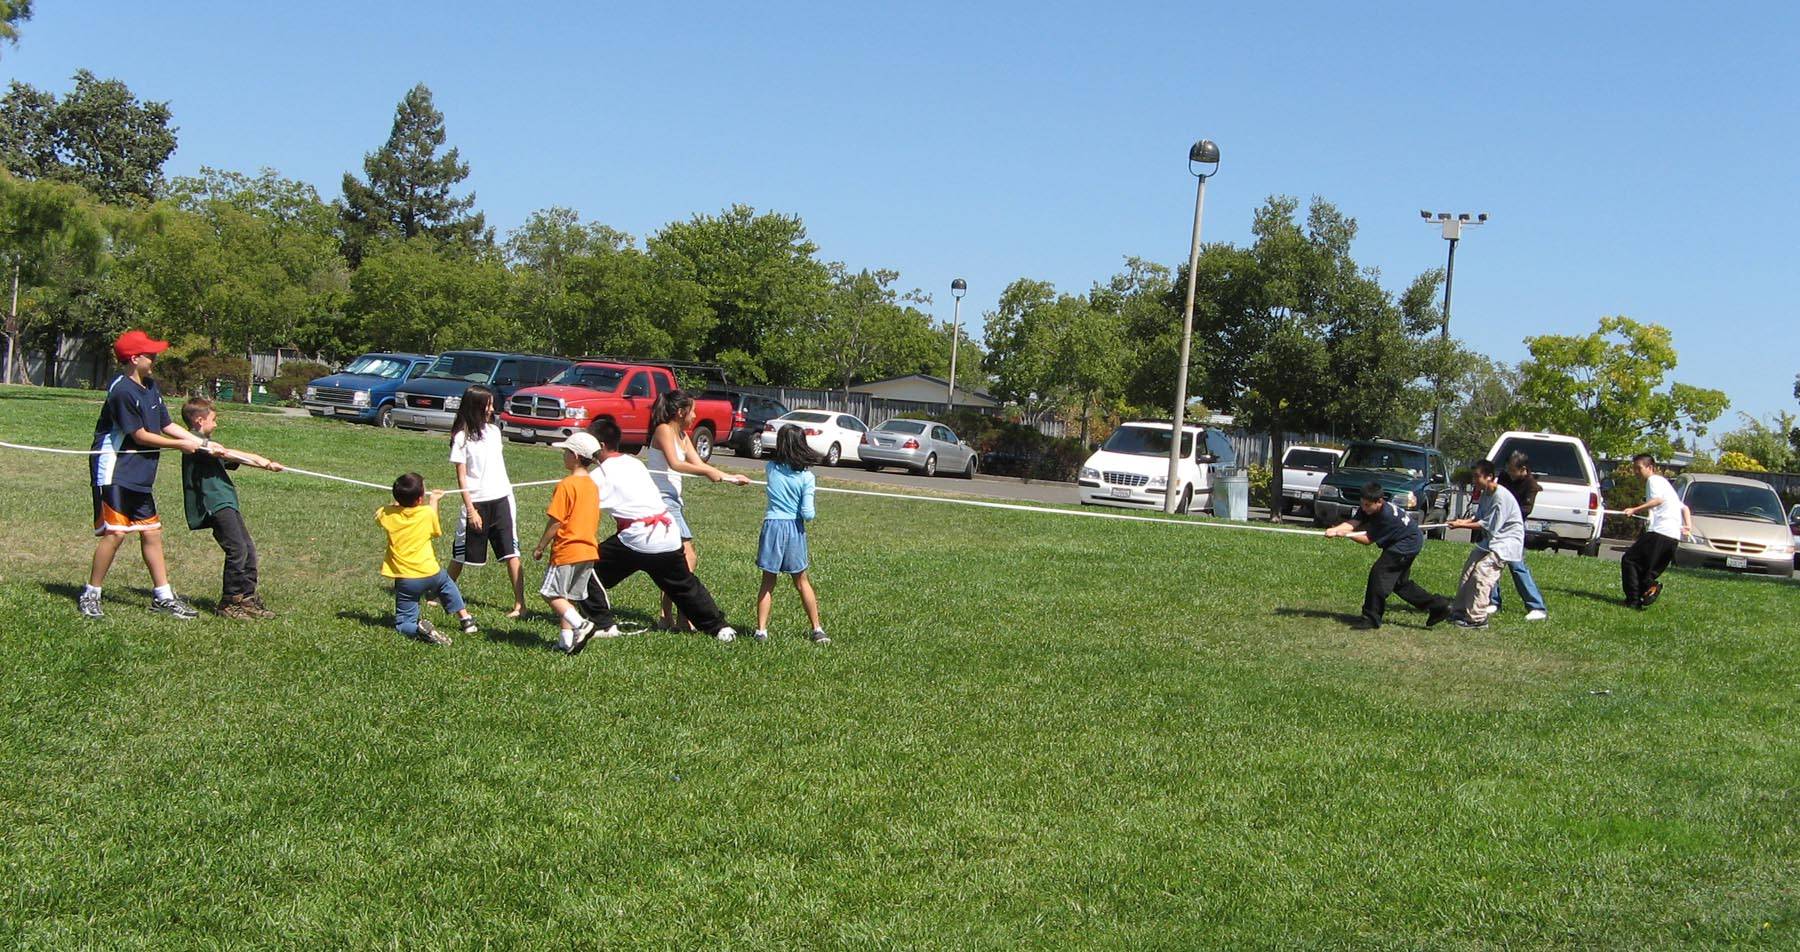 tugofwar RECA teens are in charge of organizing games for themselves and younger kids ...